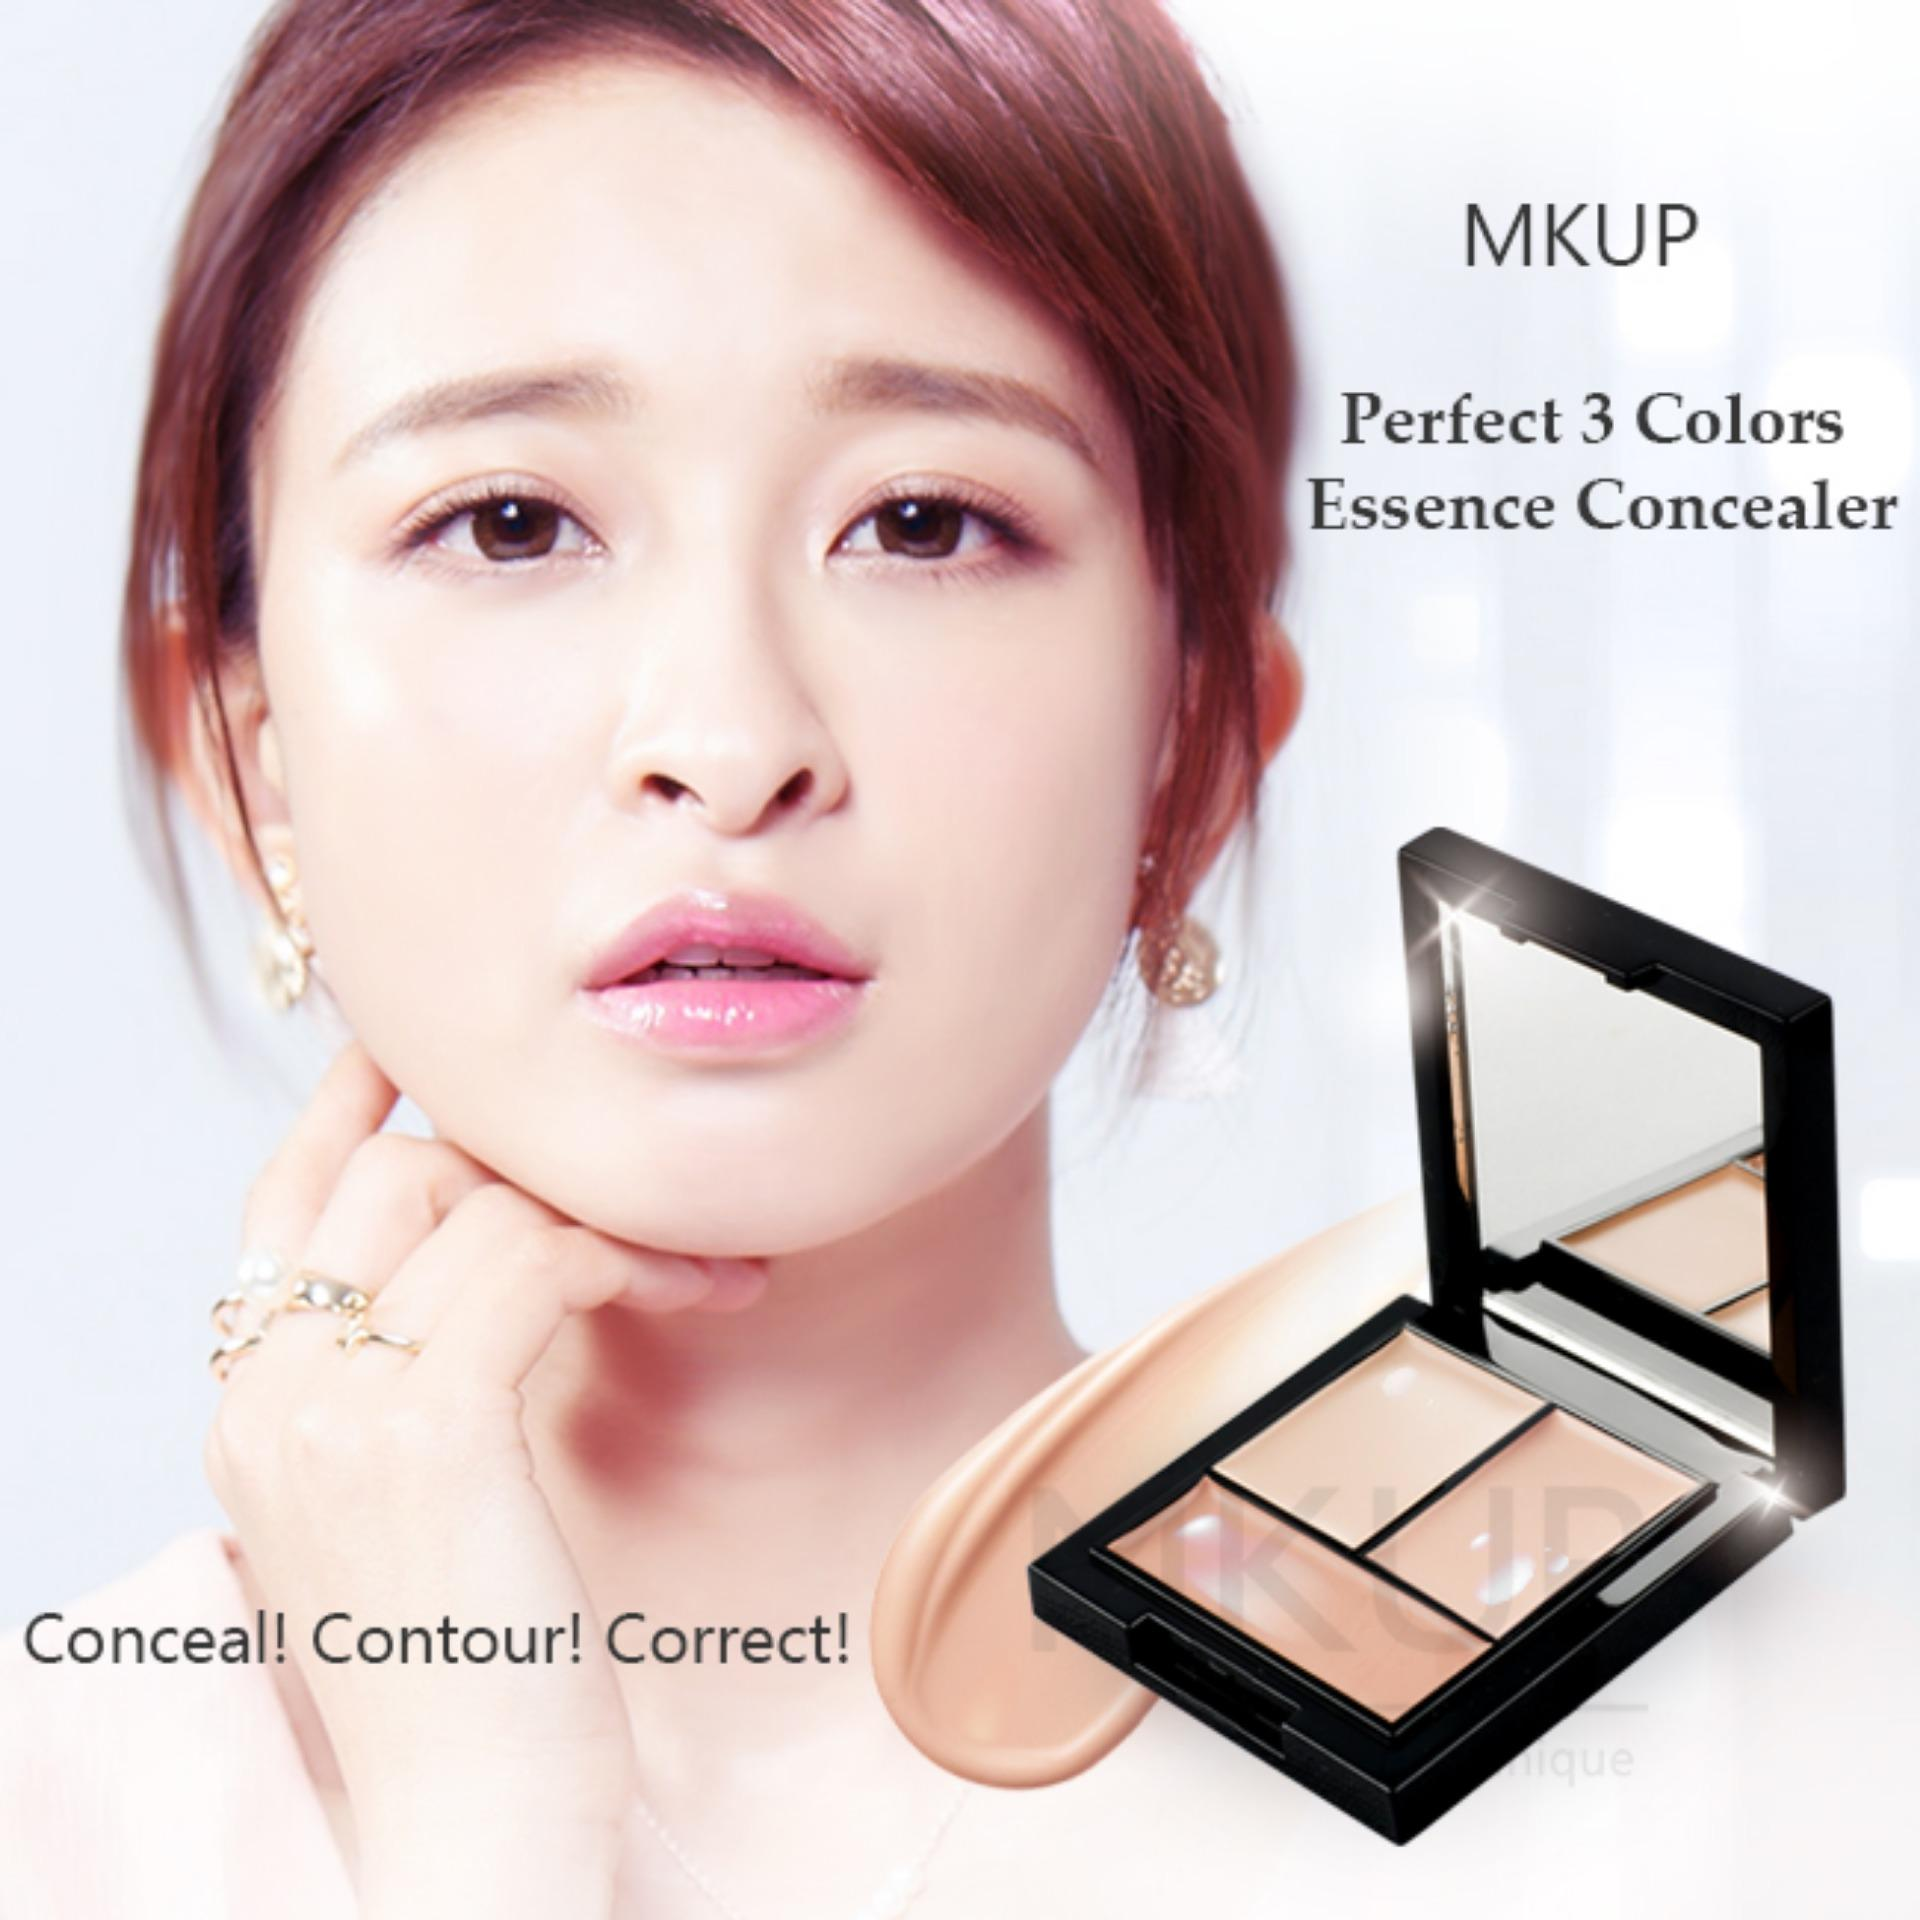 How To Buy Mkup® Perfect 3 Essence Concealer